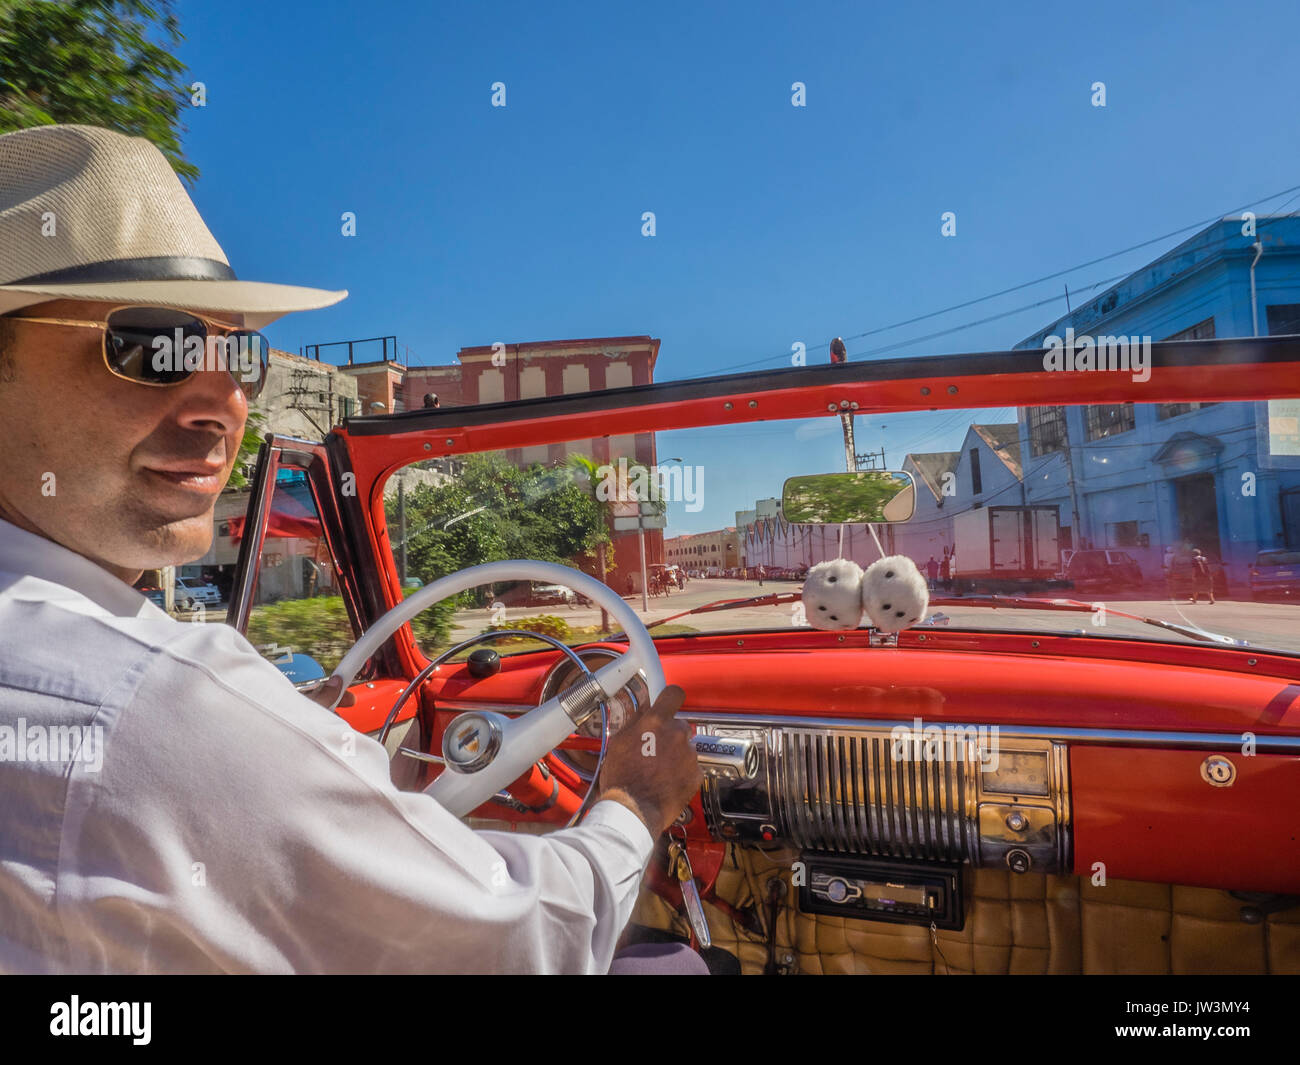 Cuban Taxi Driver In Straw Hat And White Shirt At The Wheel Of His 1951 Chevy Steering Red Chevrolet Convertible Driving Through Streets Old Havana With Fuzzy